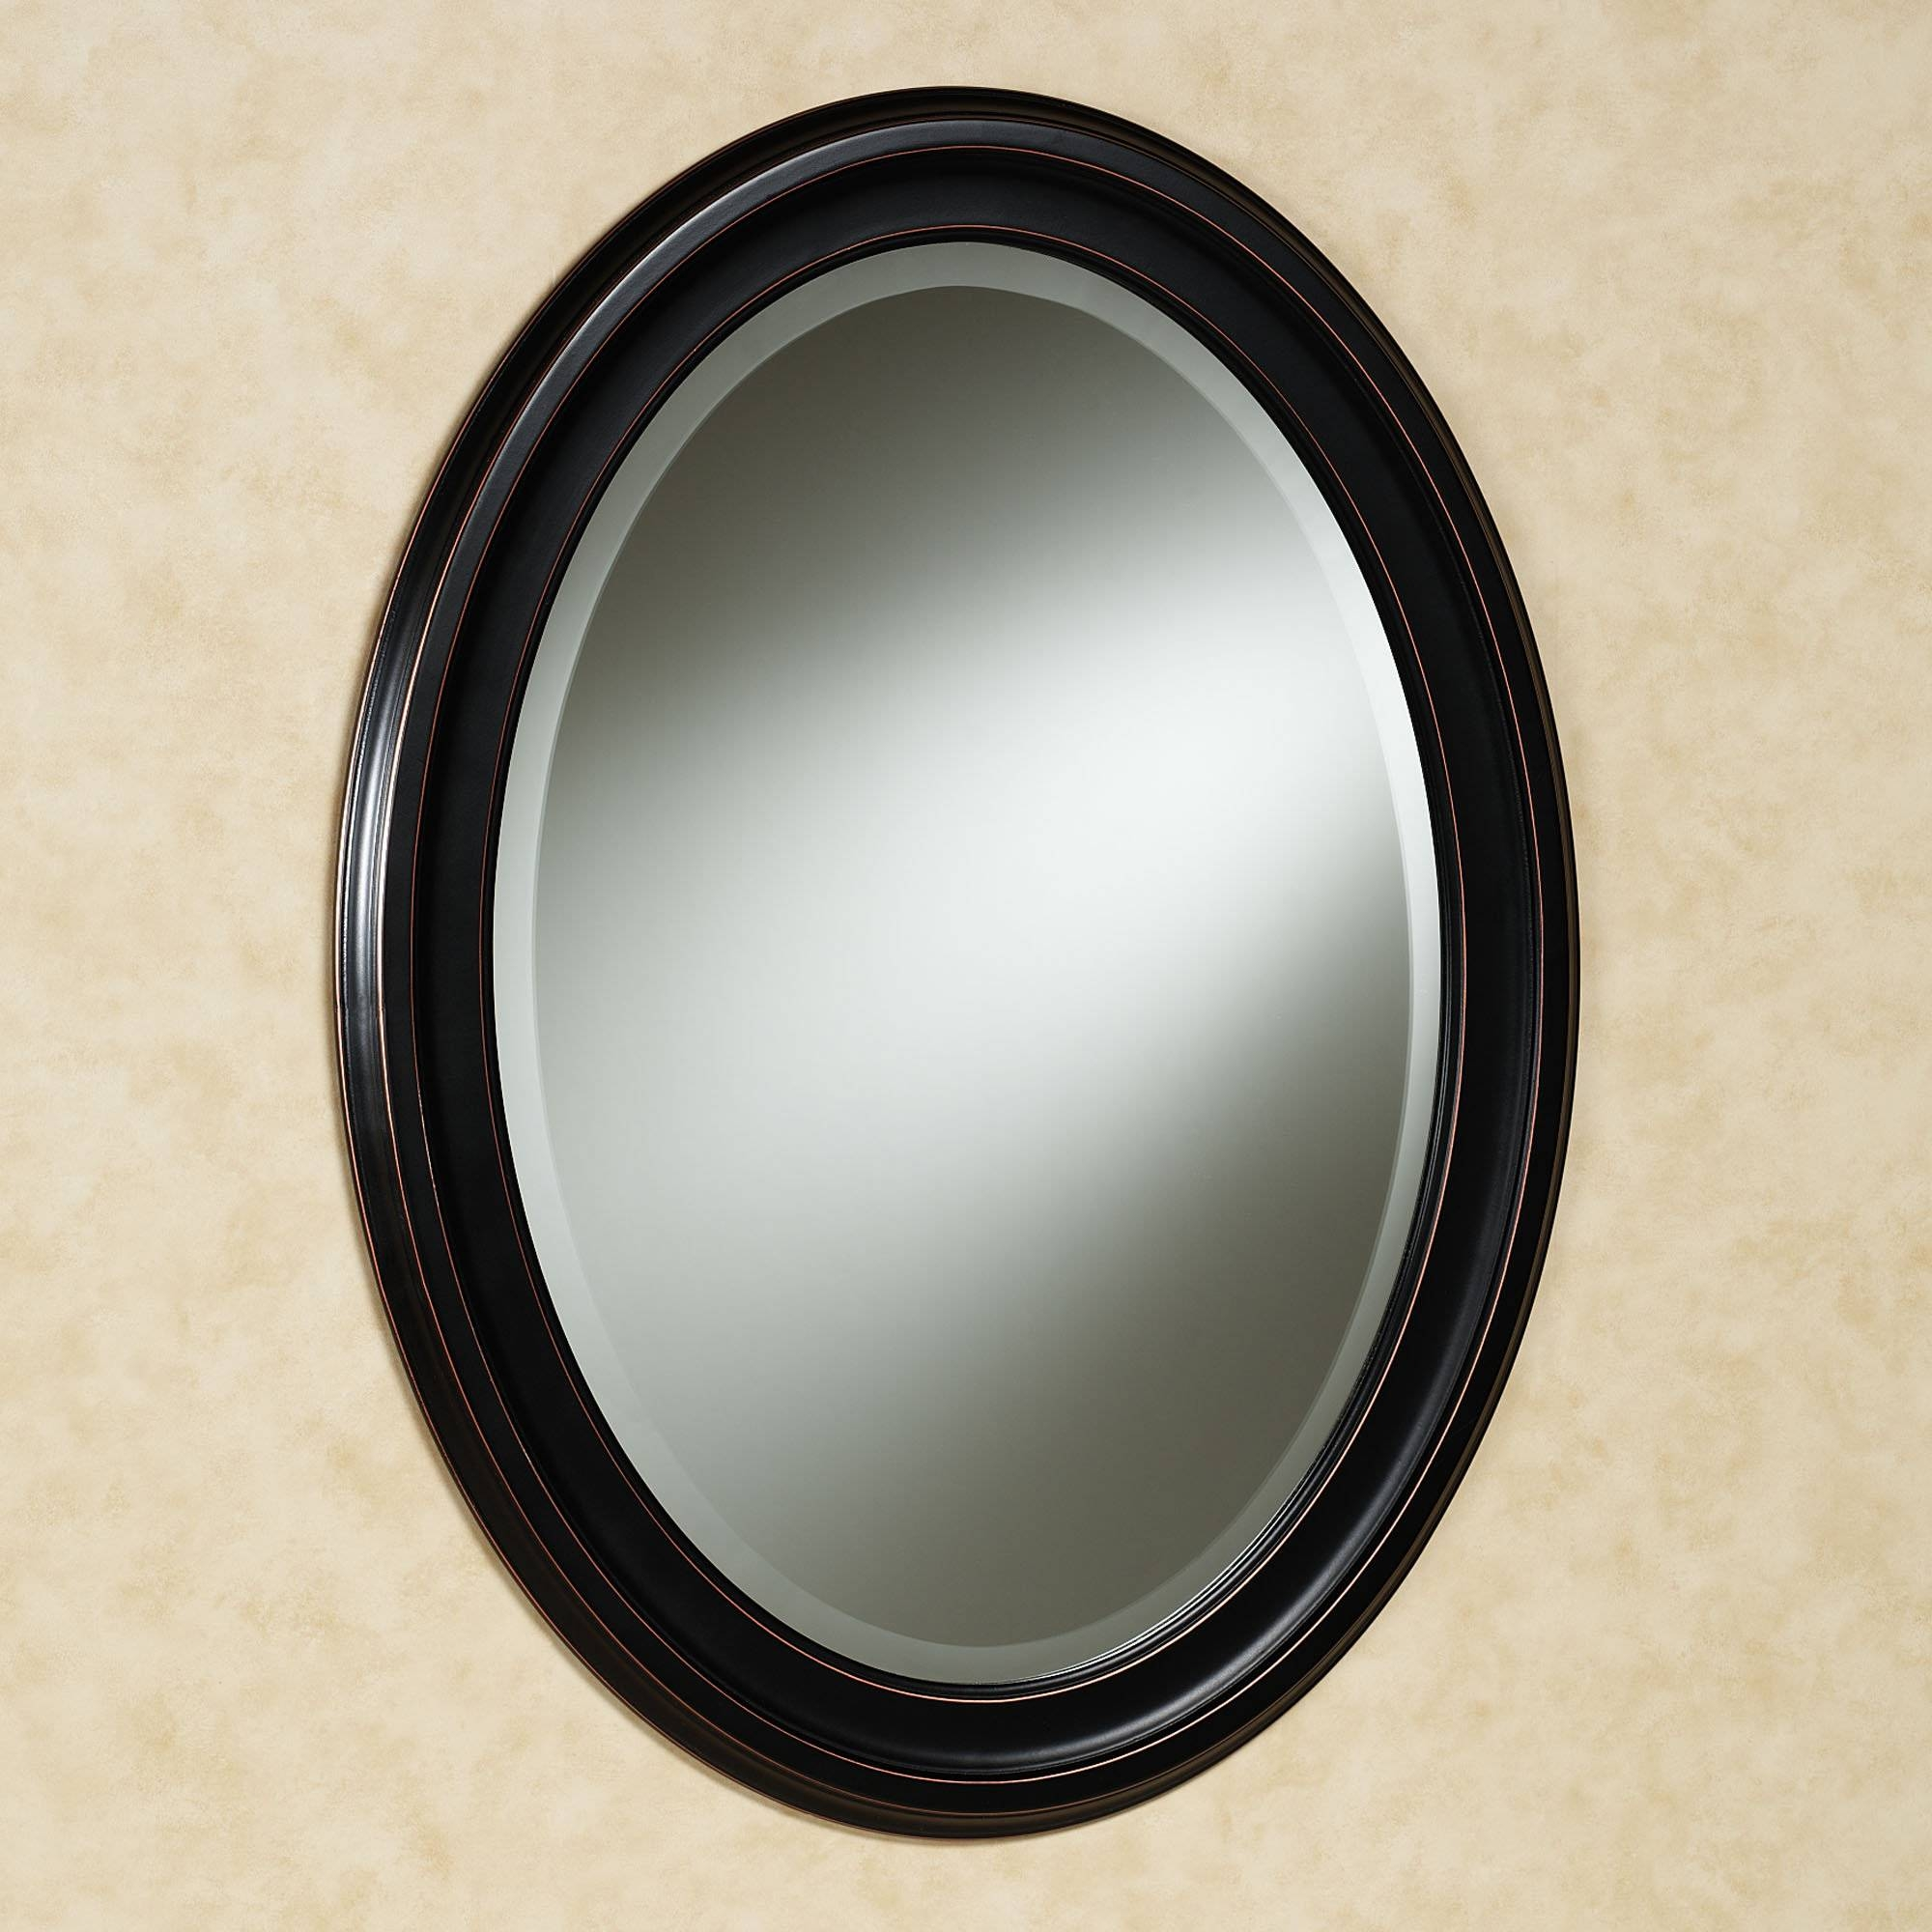 Oval Wall Mirrors, Black Oval Wall Clock Black Oval Wall Mirror with regard to Black Oval Wall Mirrors (Image 16 of 25)